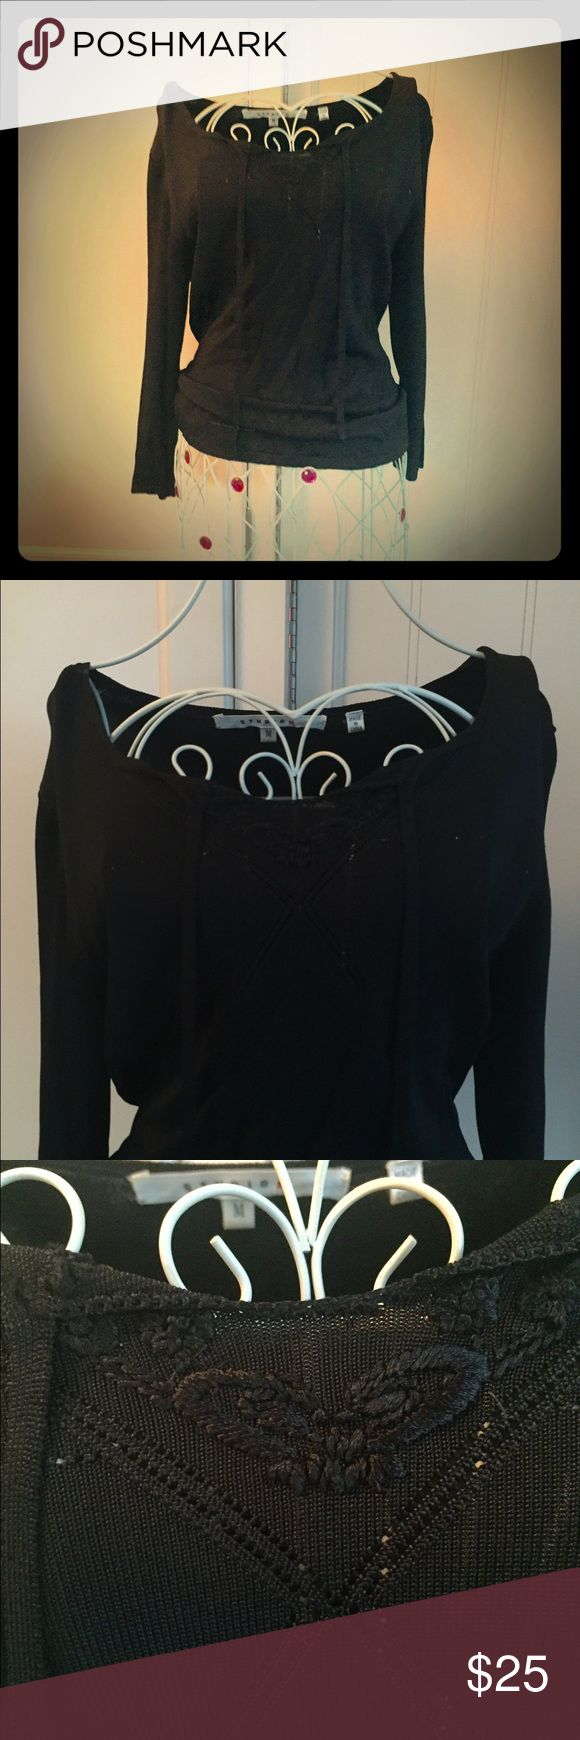 Black embroidered sweater Simple and classic black sweater with beautiful embroidery at the neckline with tie detail. It's very hard to see the detail in the photos so I used my brightest flash in the final picture. The little white marks are areas where the white dress form glowed under the flash, they are not flaws in the sweater. Gently worn. Studio M Sweaters